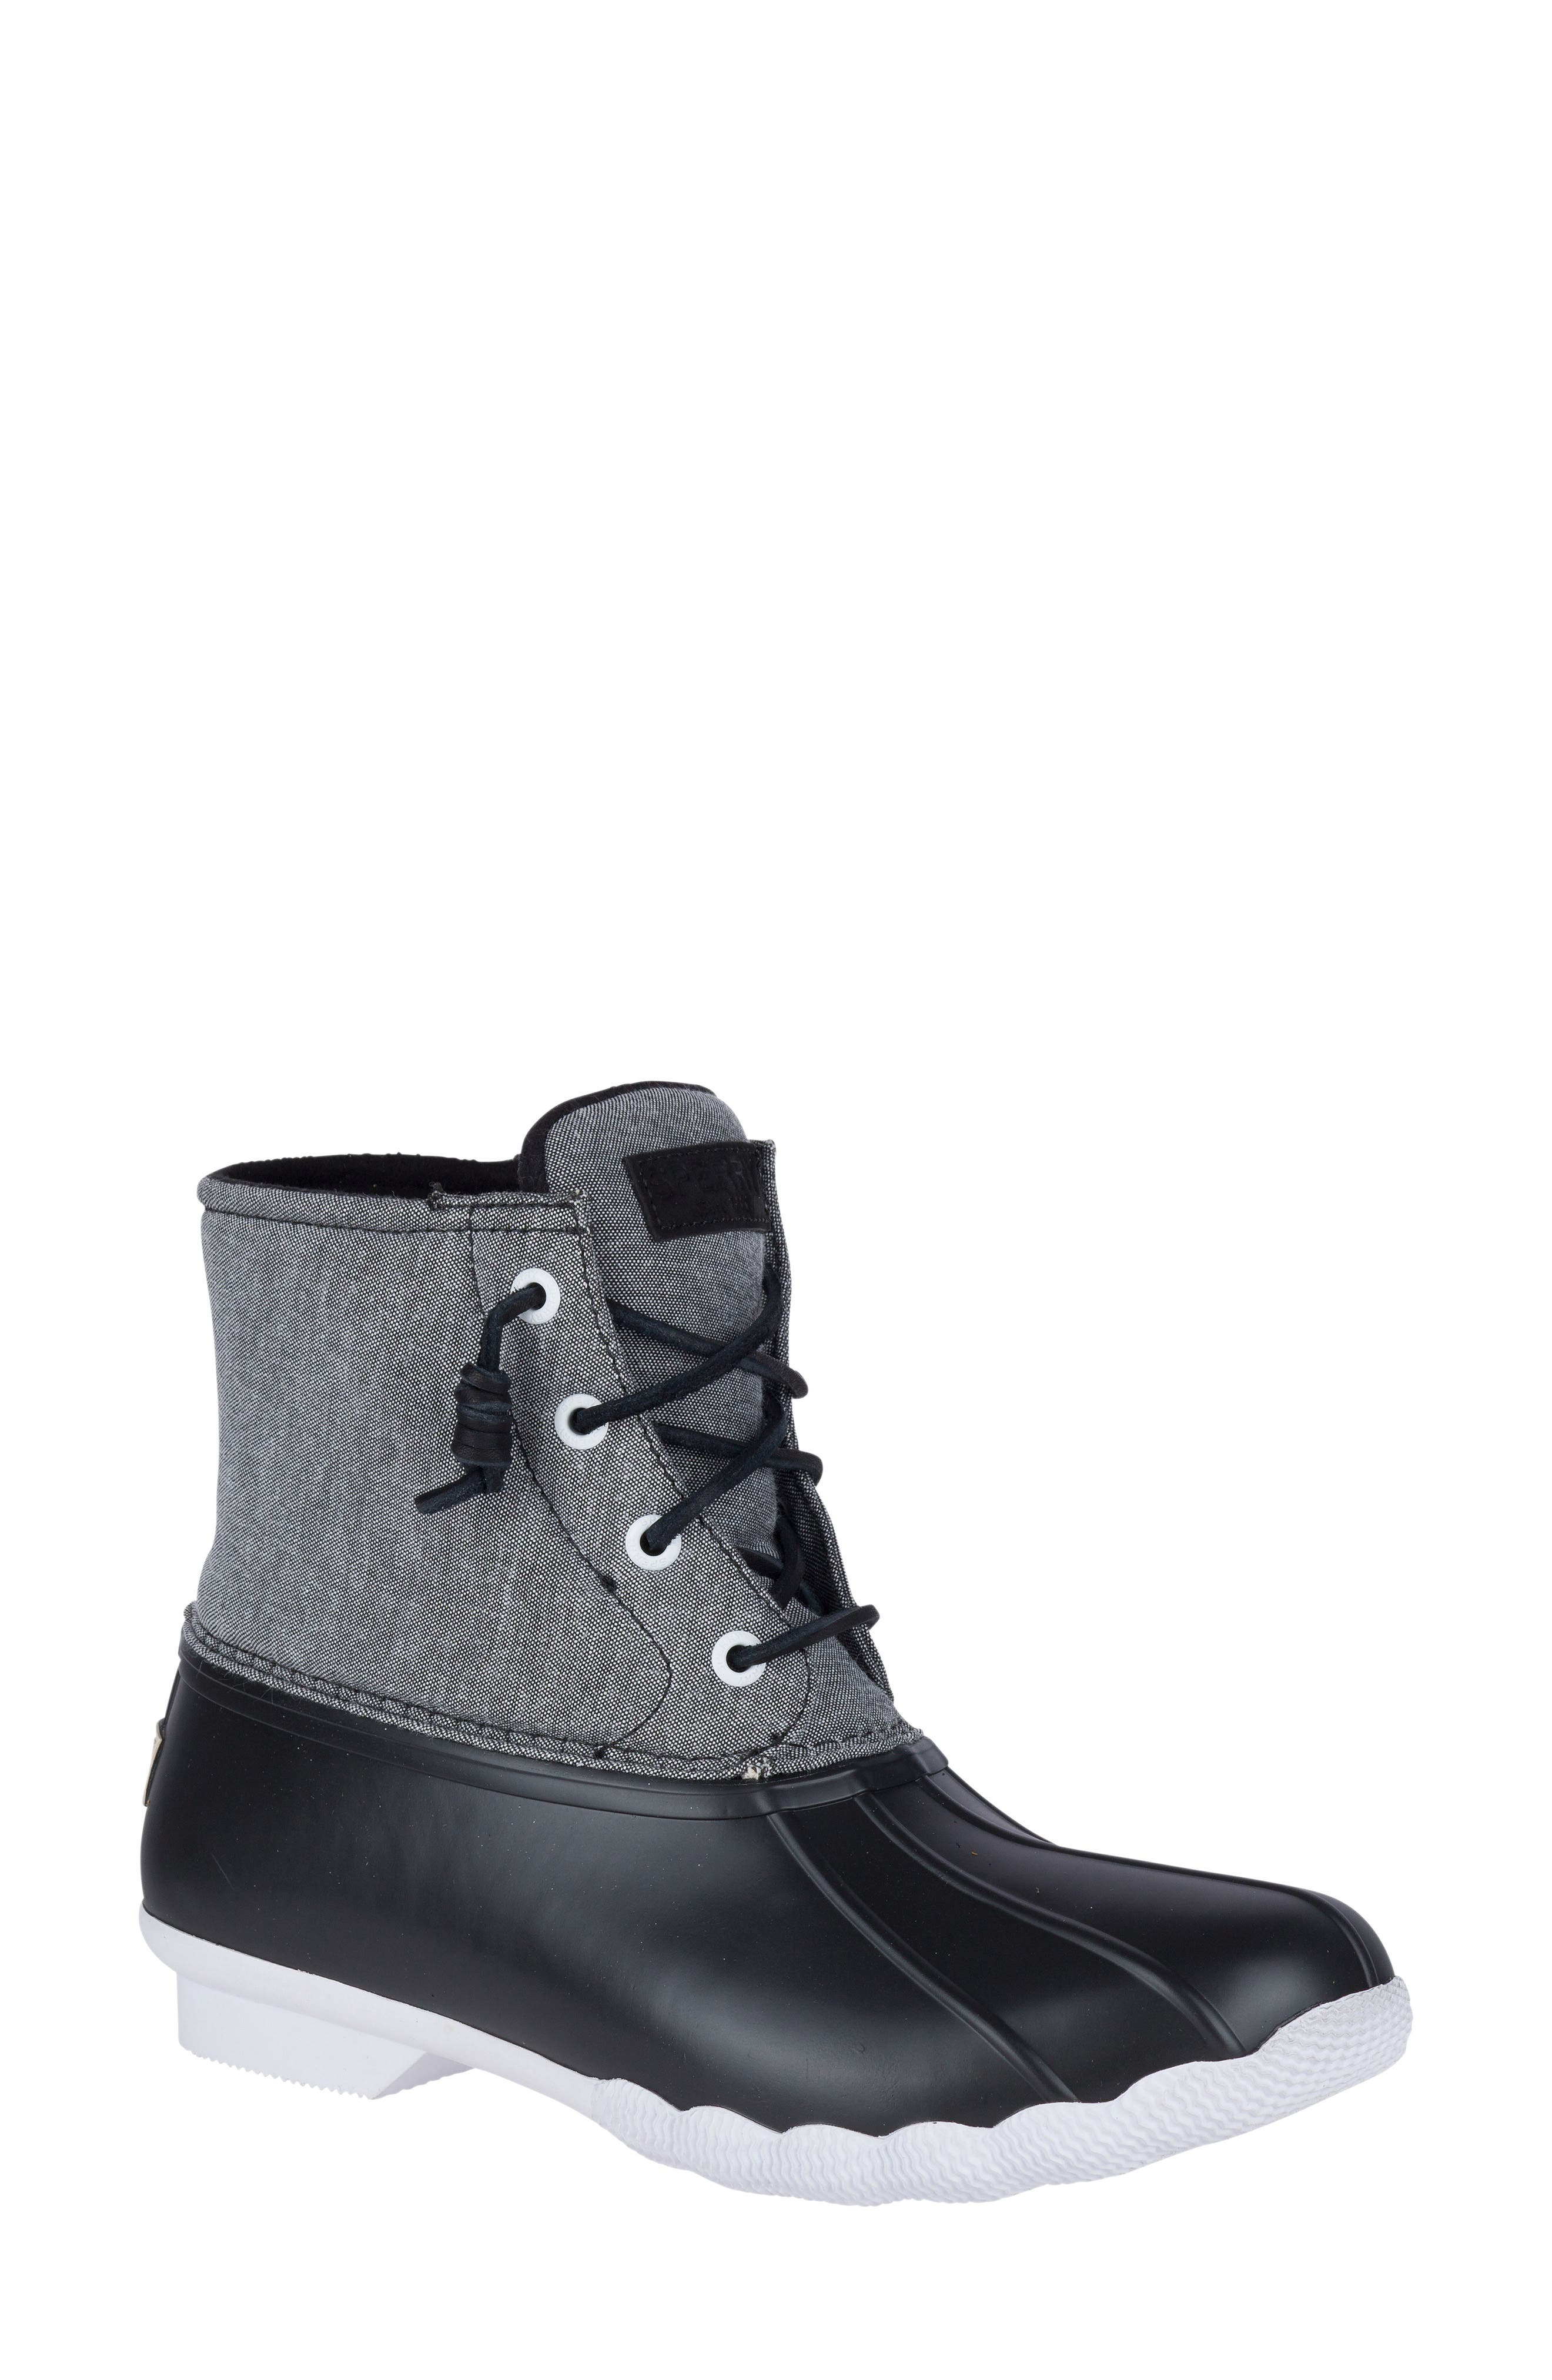 Main Image - Sperry 'Saltwater' Waterproof Rain Boot (Women)